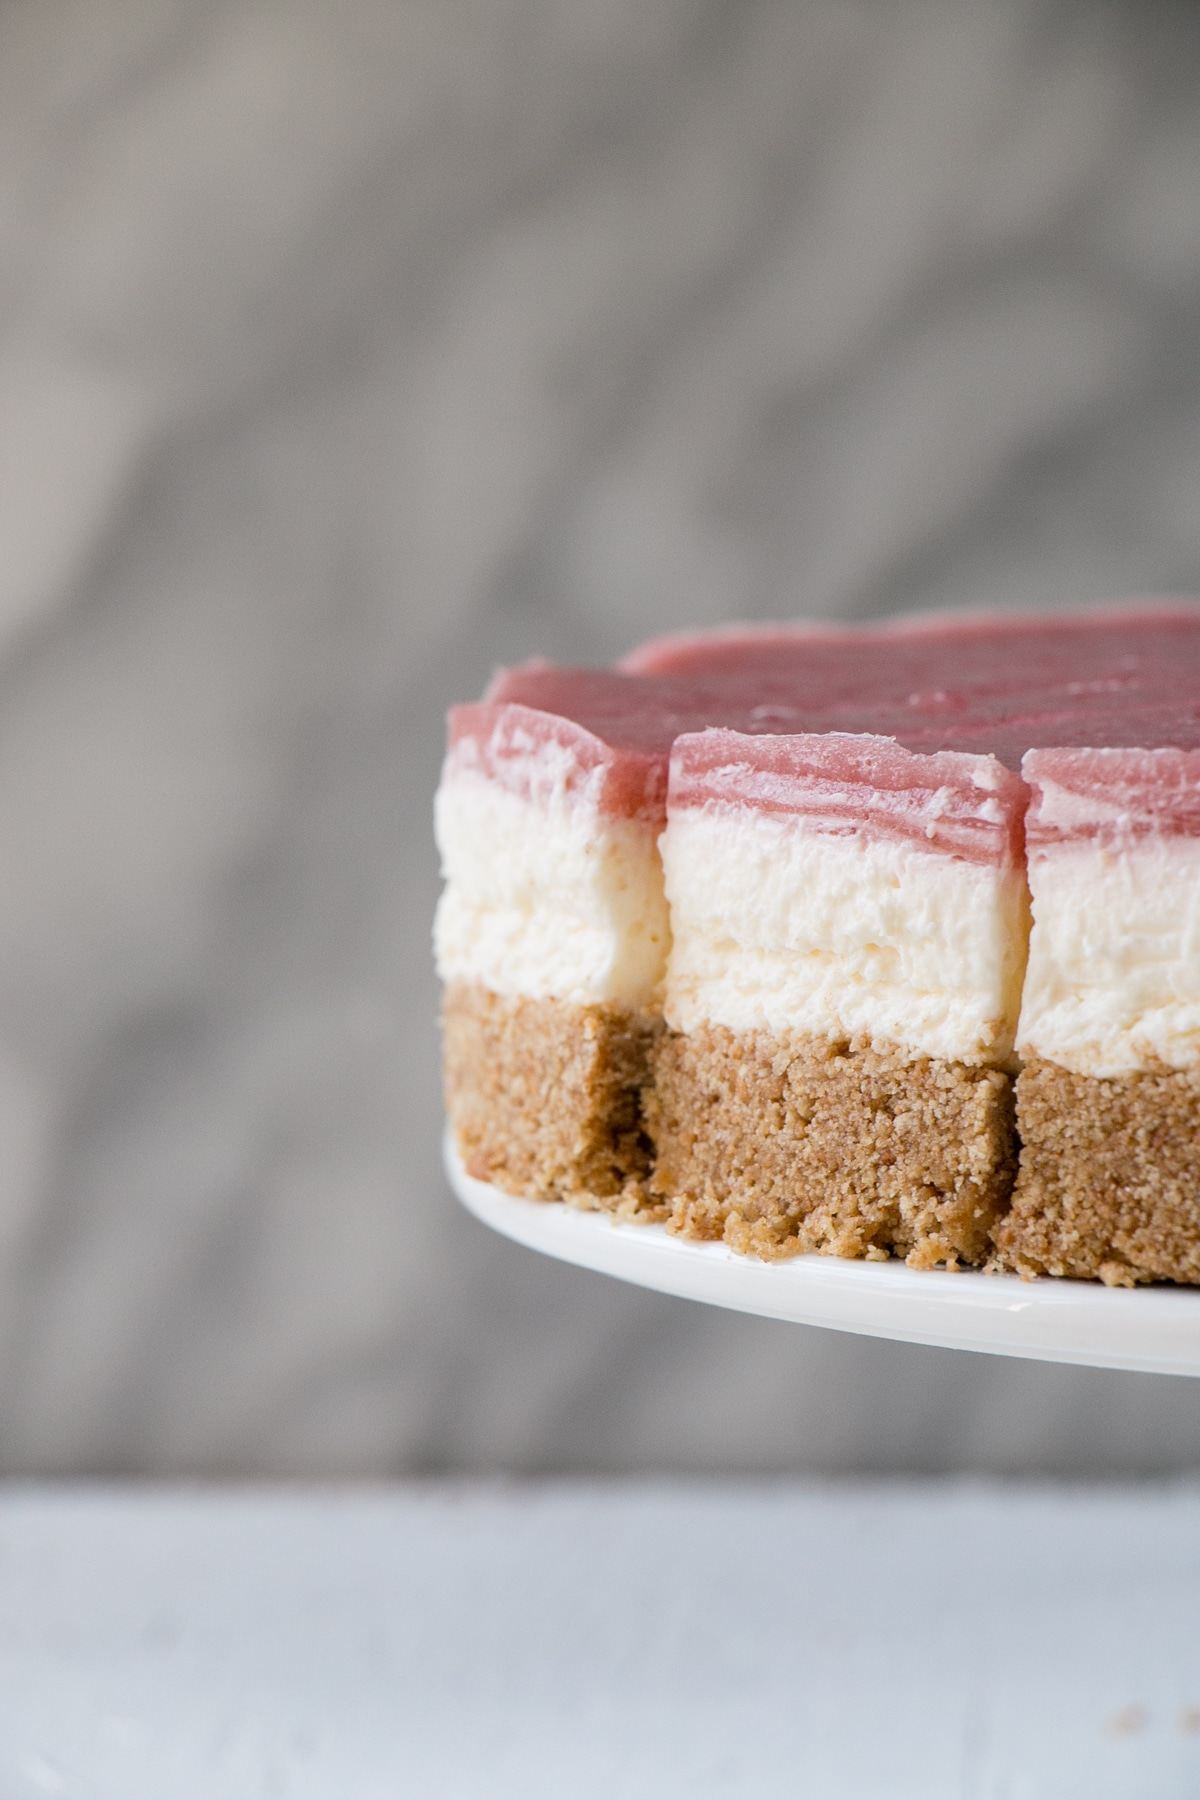 side angle photo showing layers of a No Bake Rhubarb Cheesecake